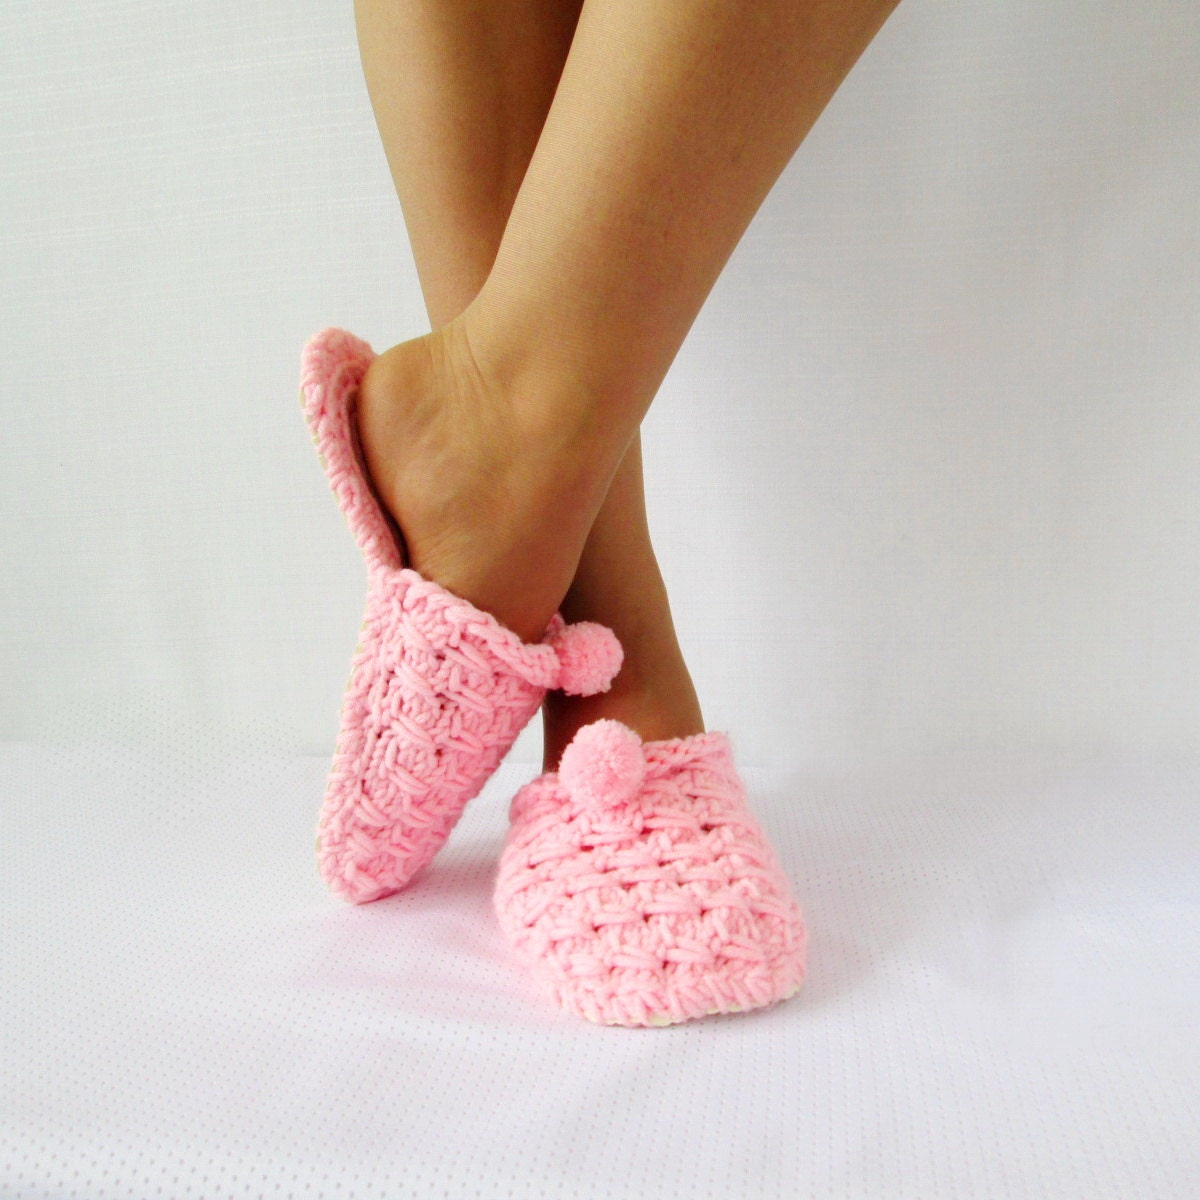 bedroom slippers pink slippers house slippers slippers